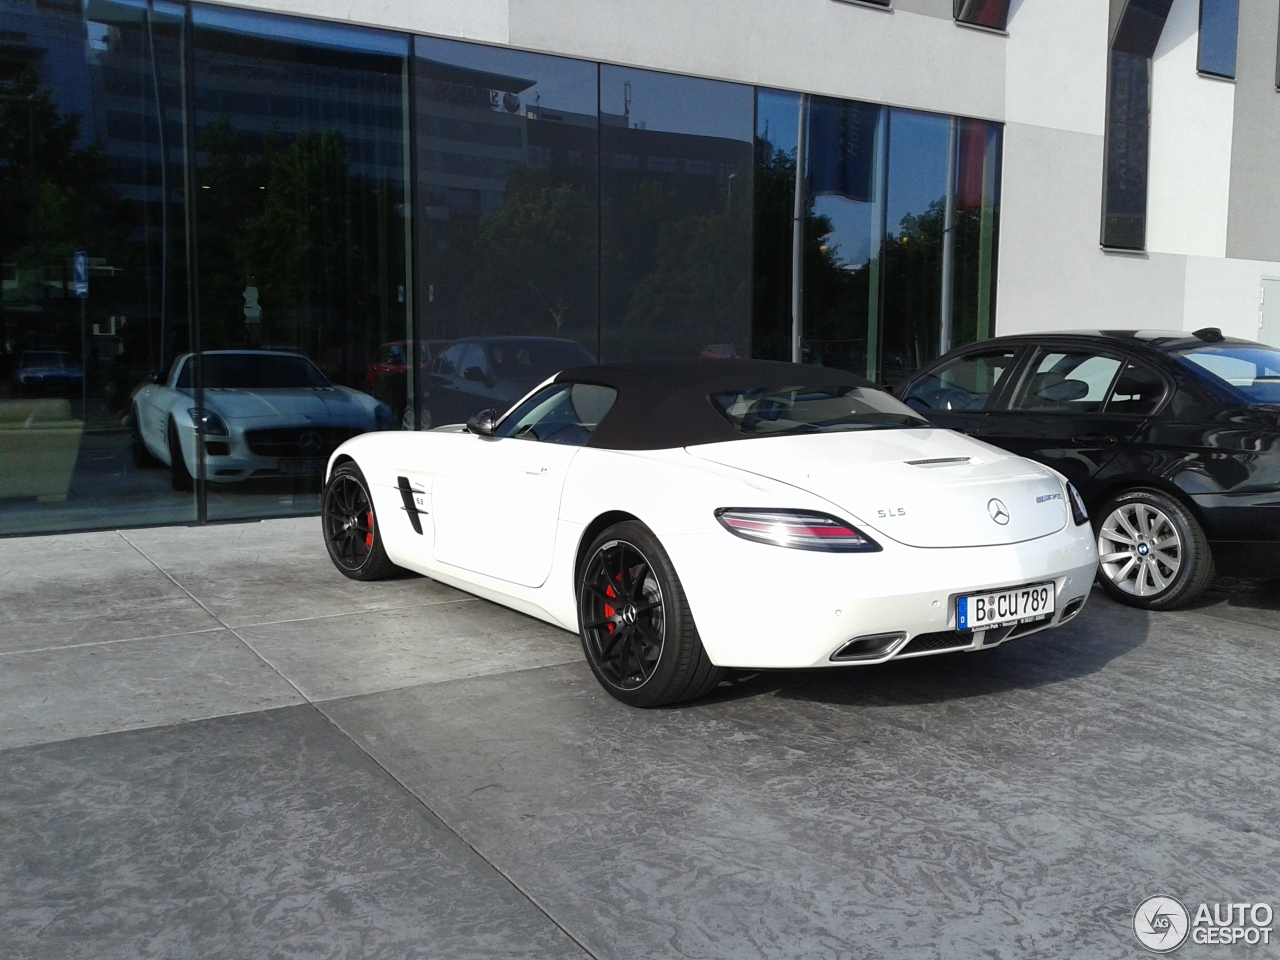 https://ag-spots-2017.o.auroraobjects.eu/2017/06/02/mercedes-benz-sls-amg-gt-roadster-c166902062017184448_1.jpg